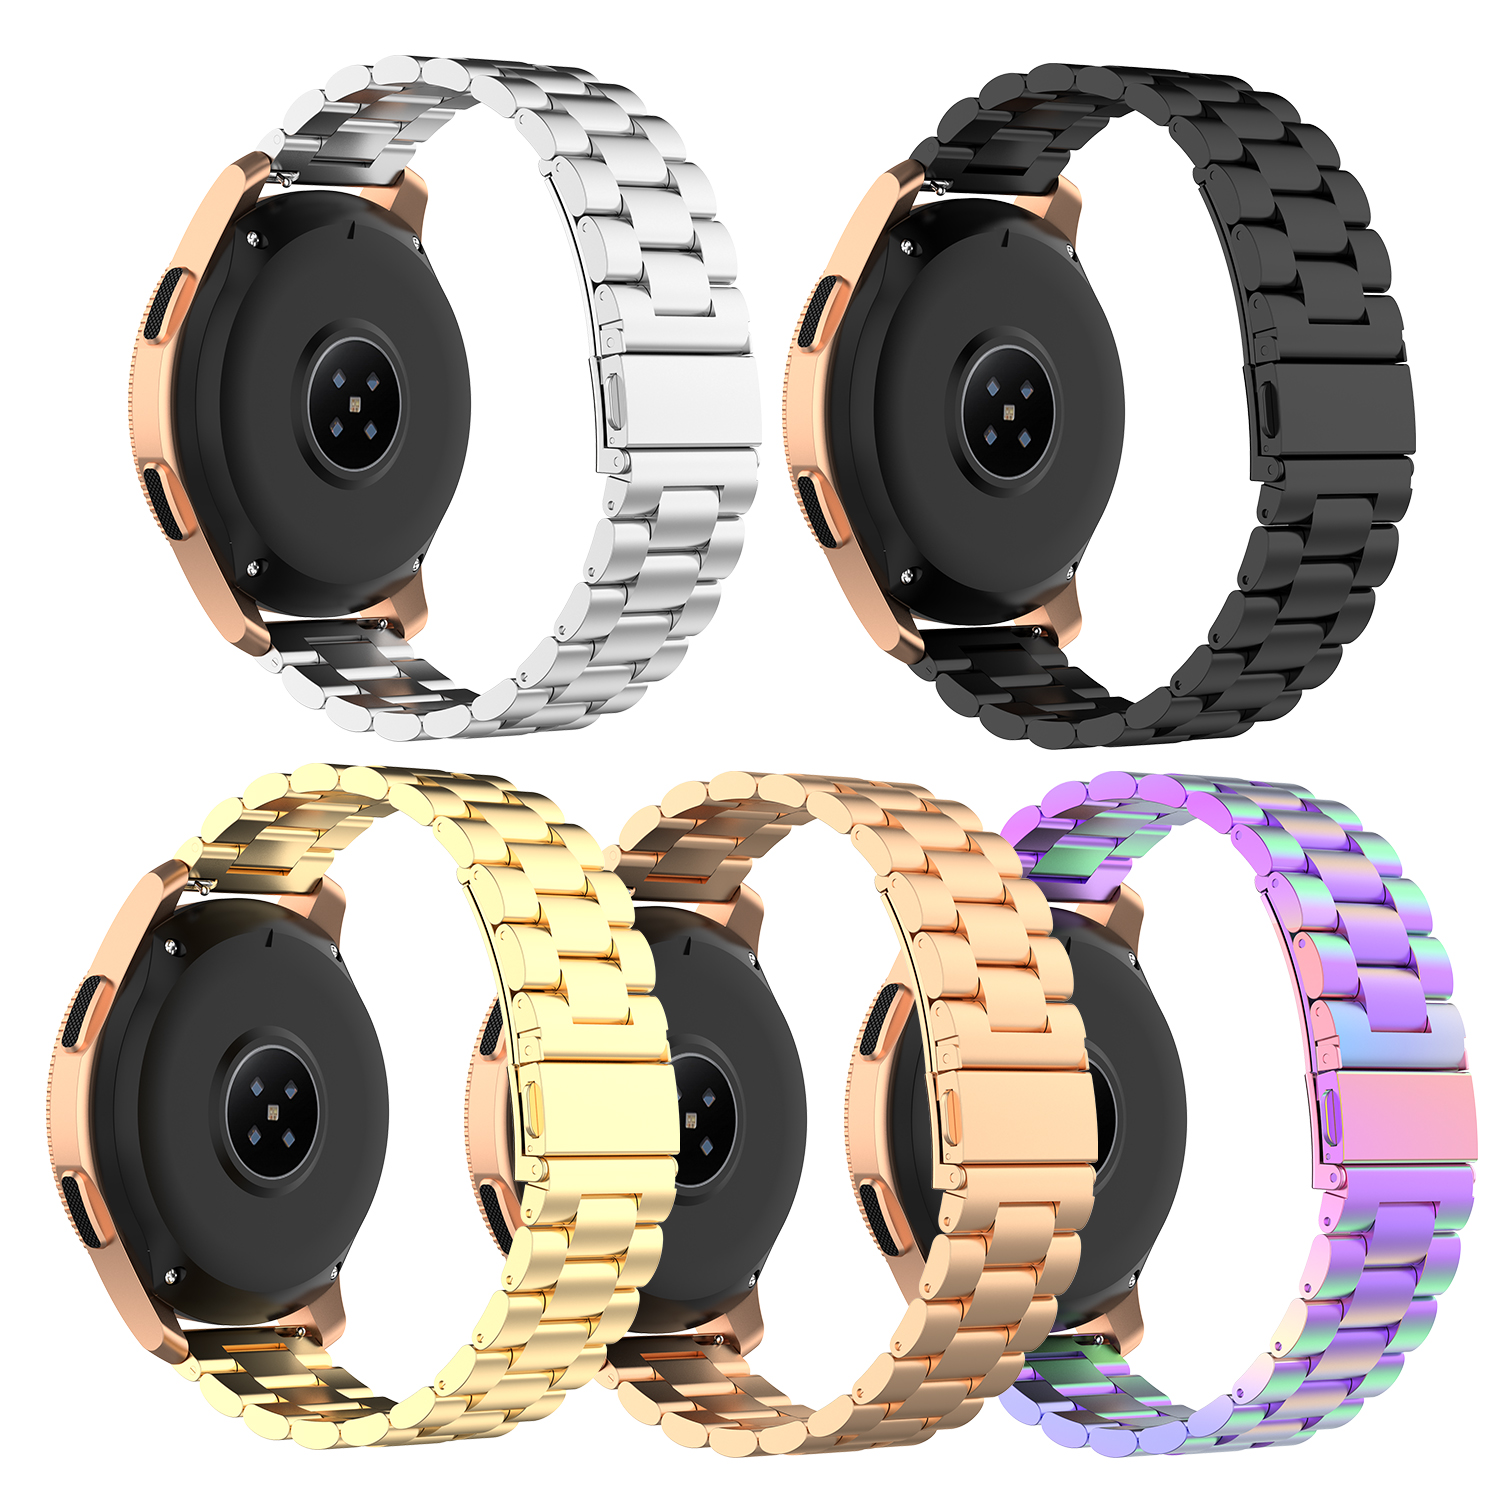 Steel Strap Stainless Steel Unisex 20mm Universal Steel Belt For Huami Amazfit BIP For Samsung Galaxy Watch For S3 Three Beads